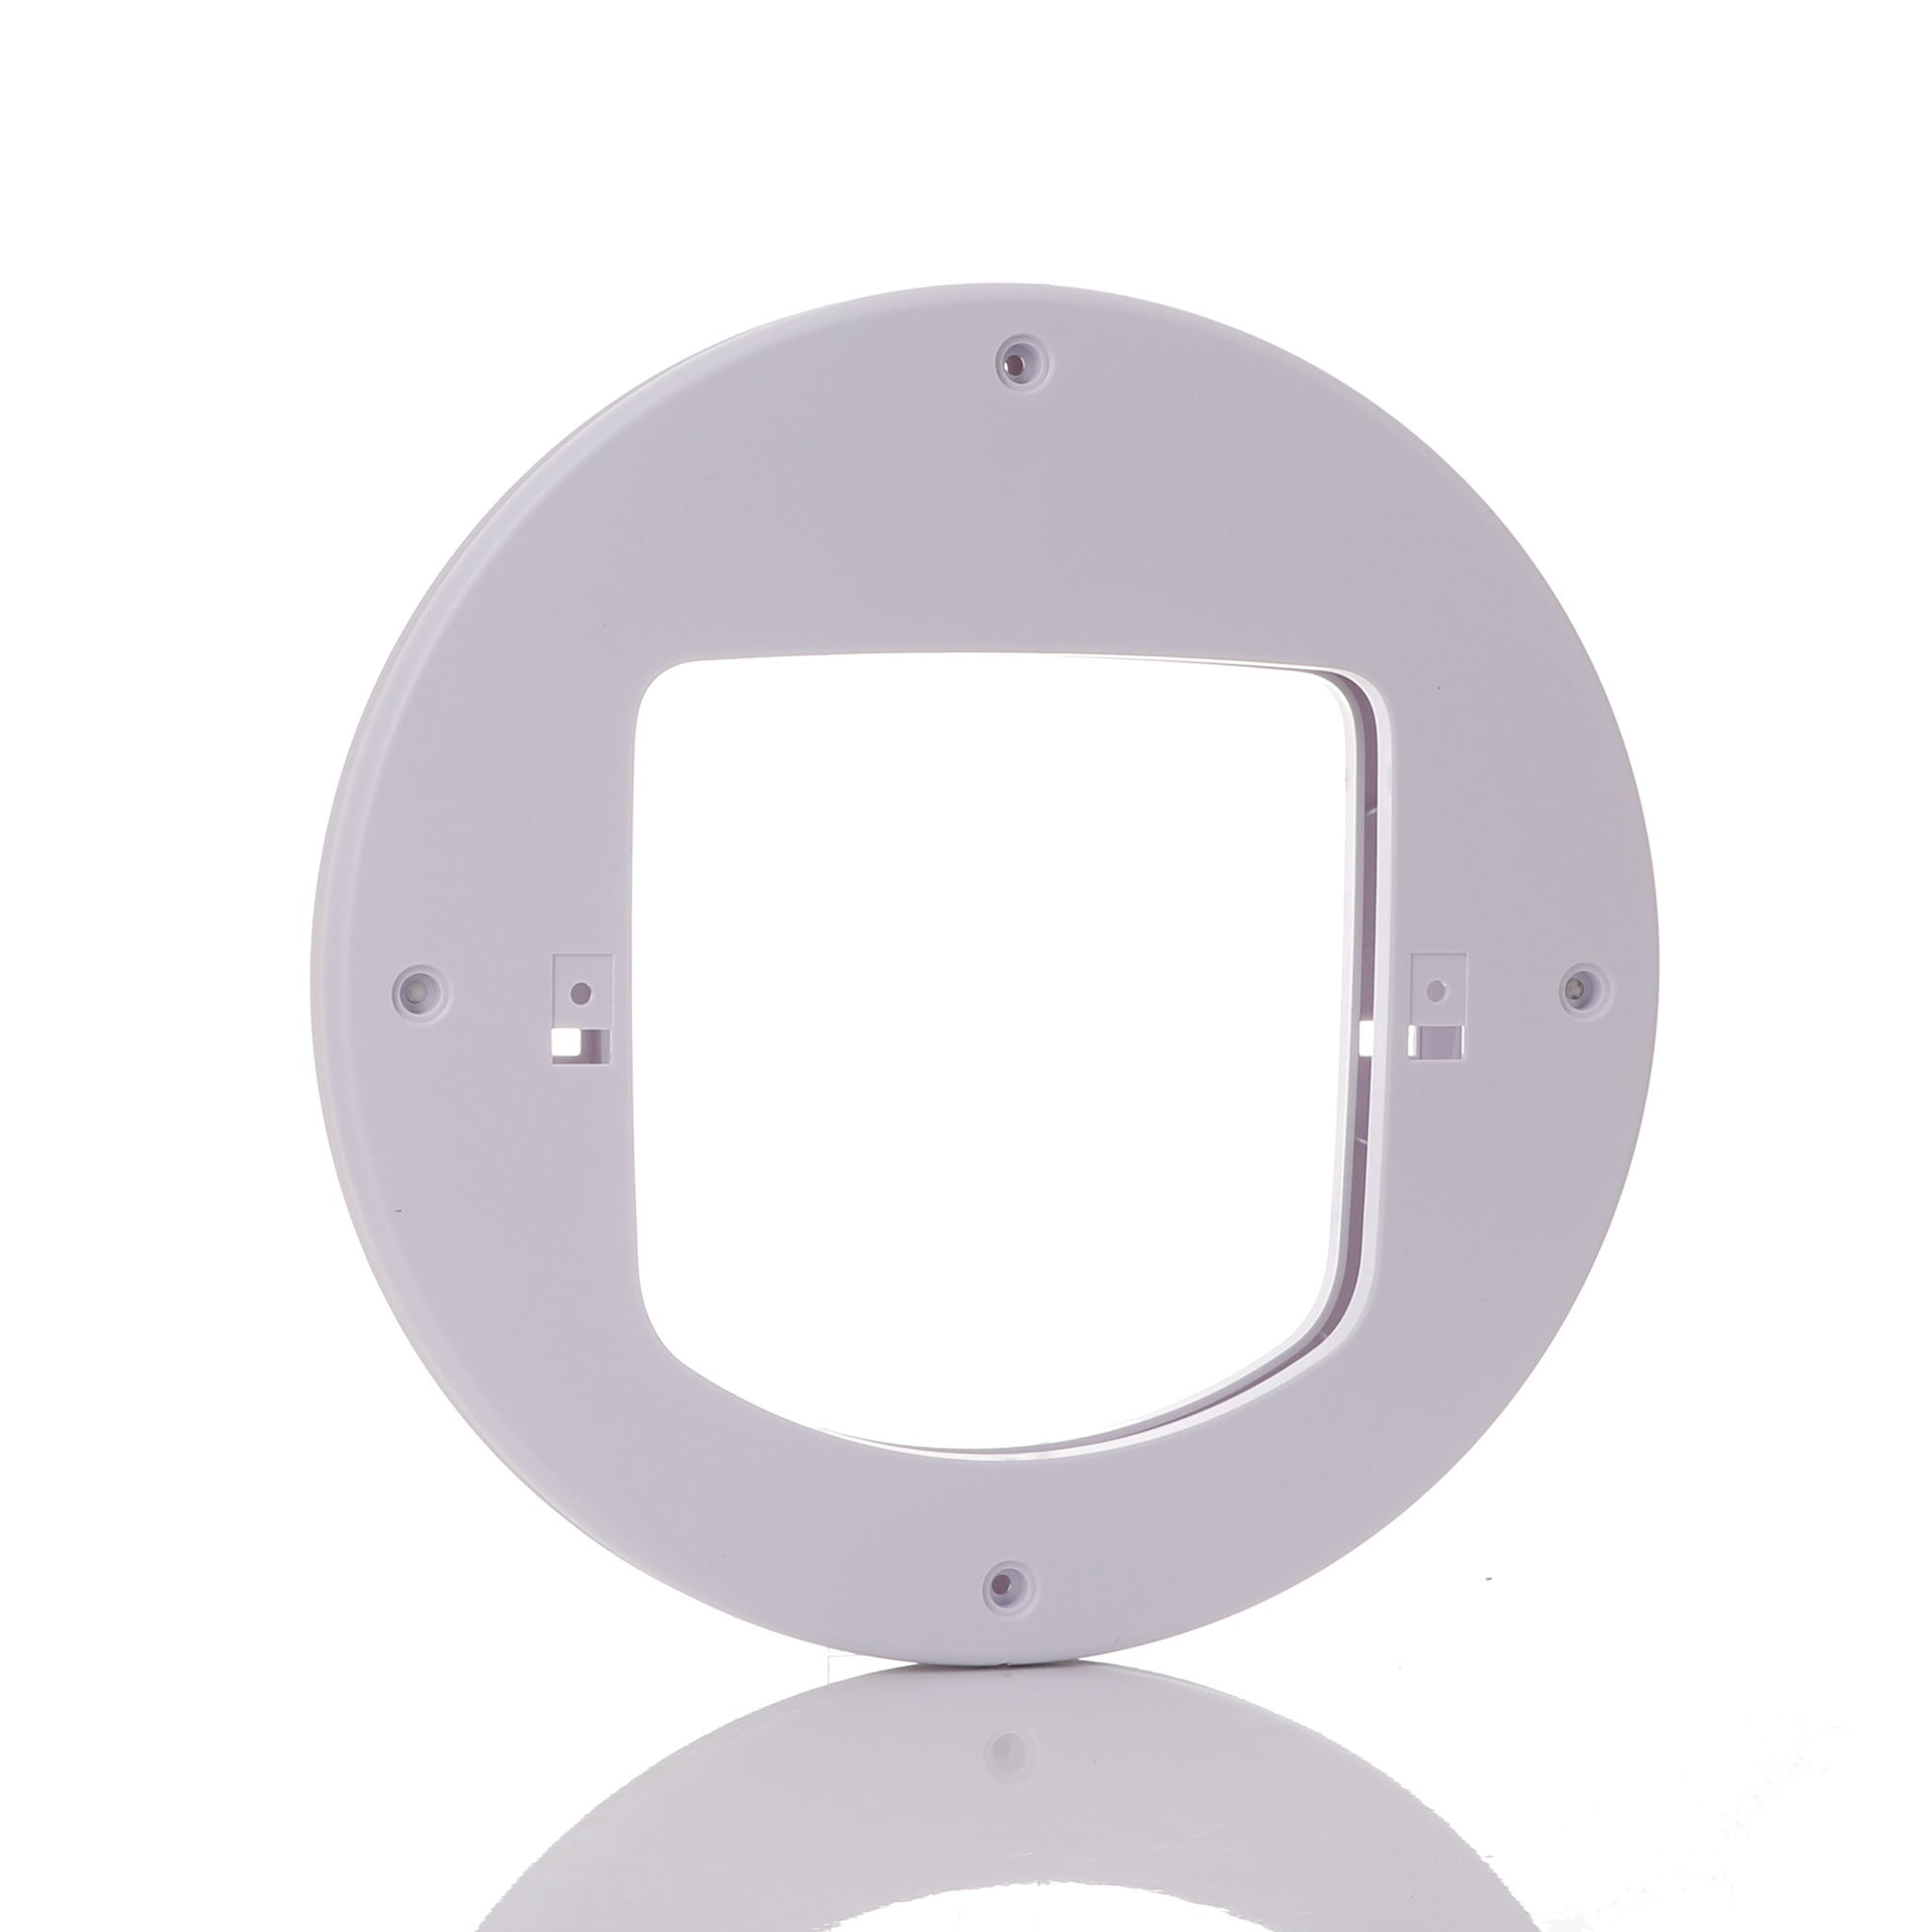 A round adapter used to install cat doors into glass from PetSafe